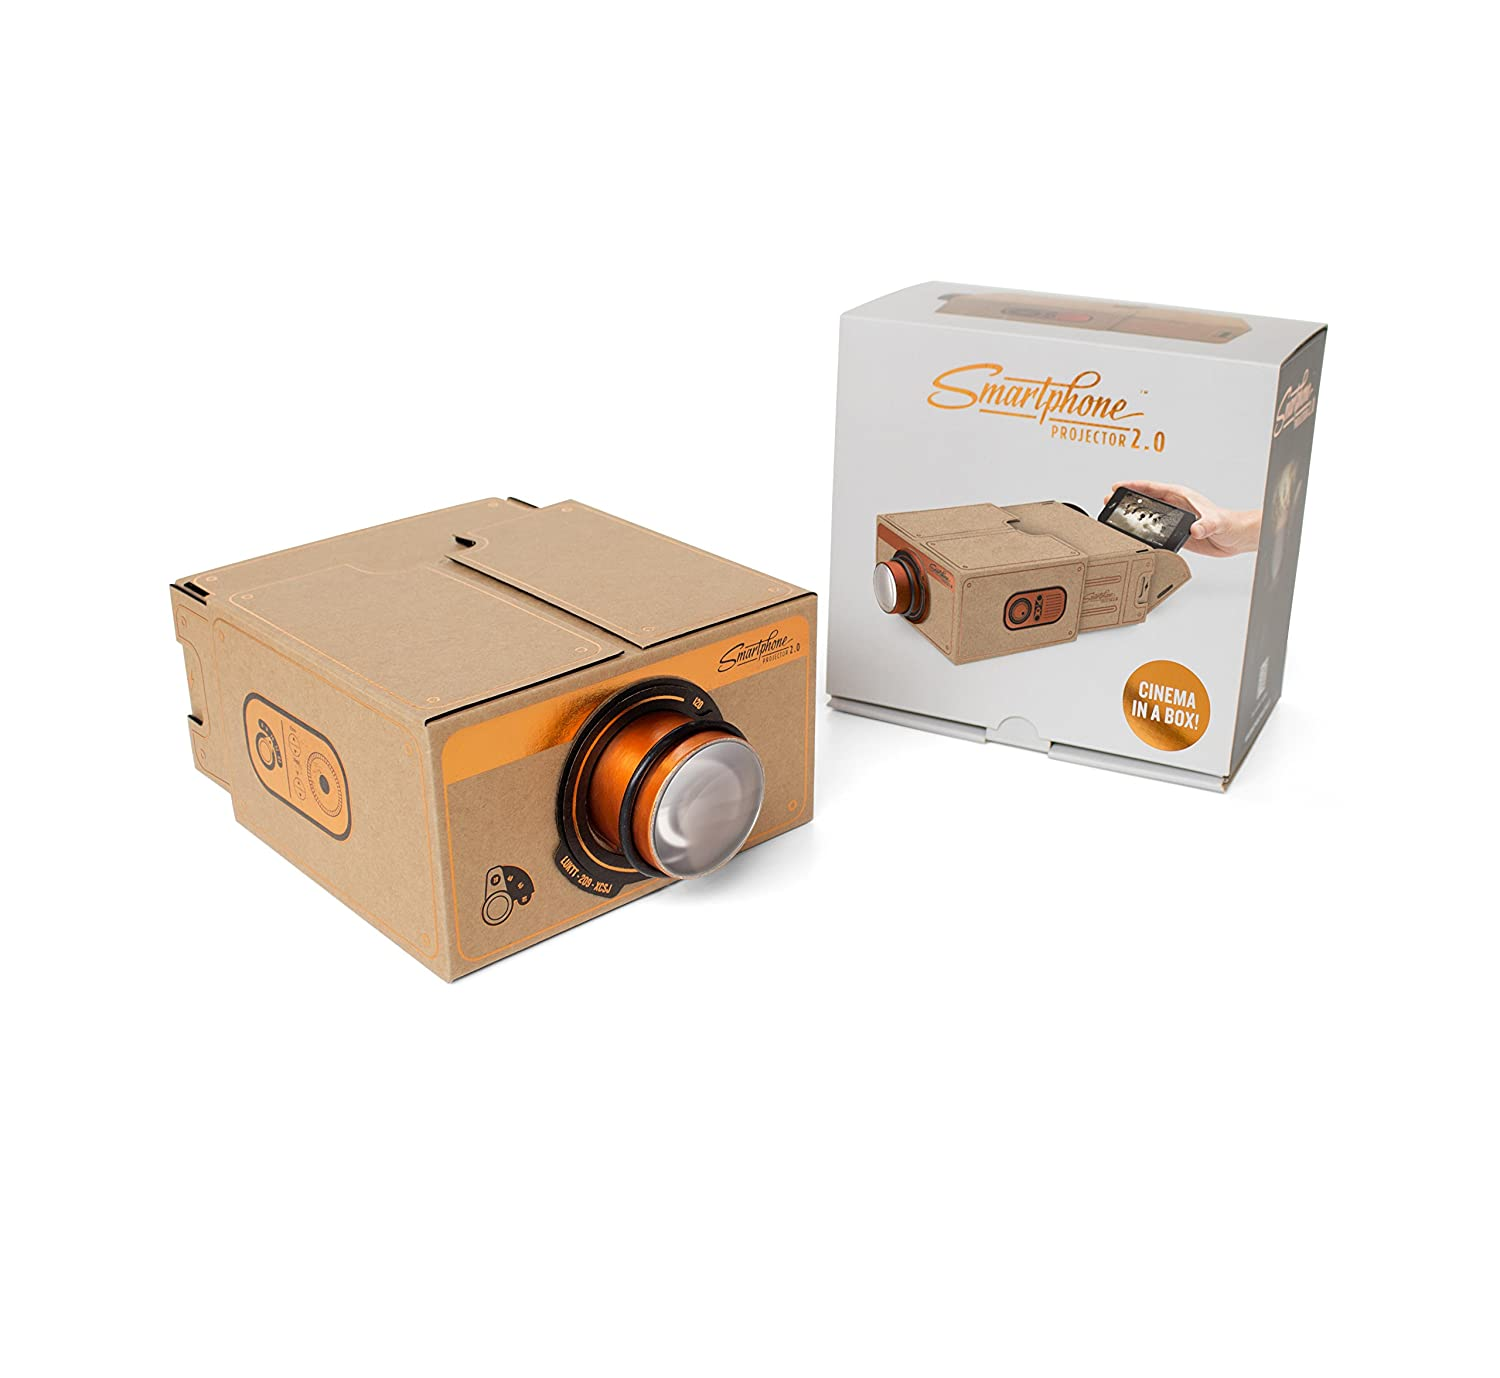 Luckies of London LUKPRO2C Smart Phone Projector 2.0 copper edition